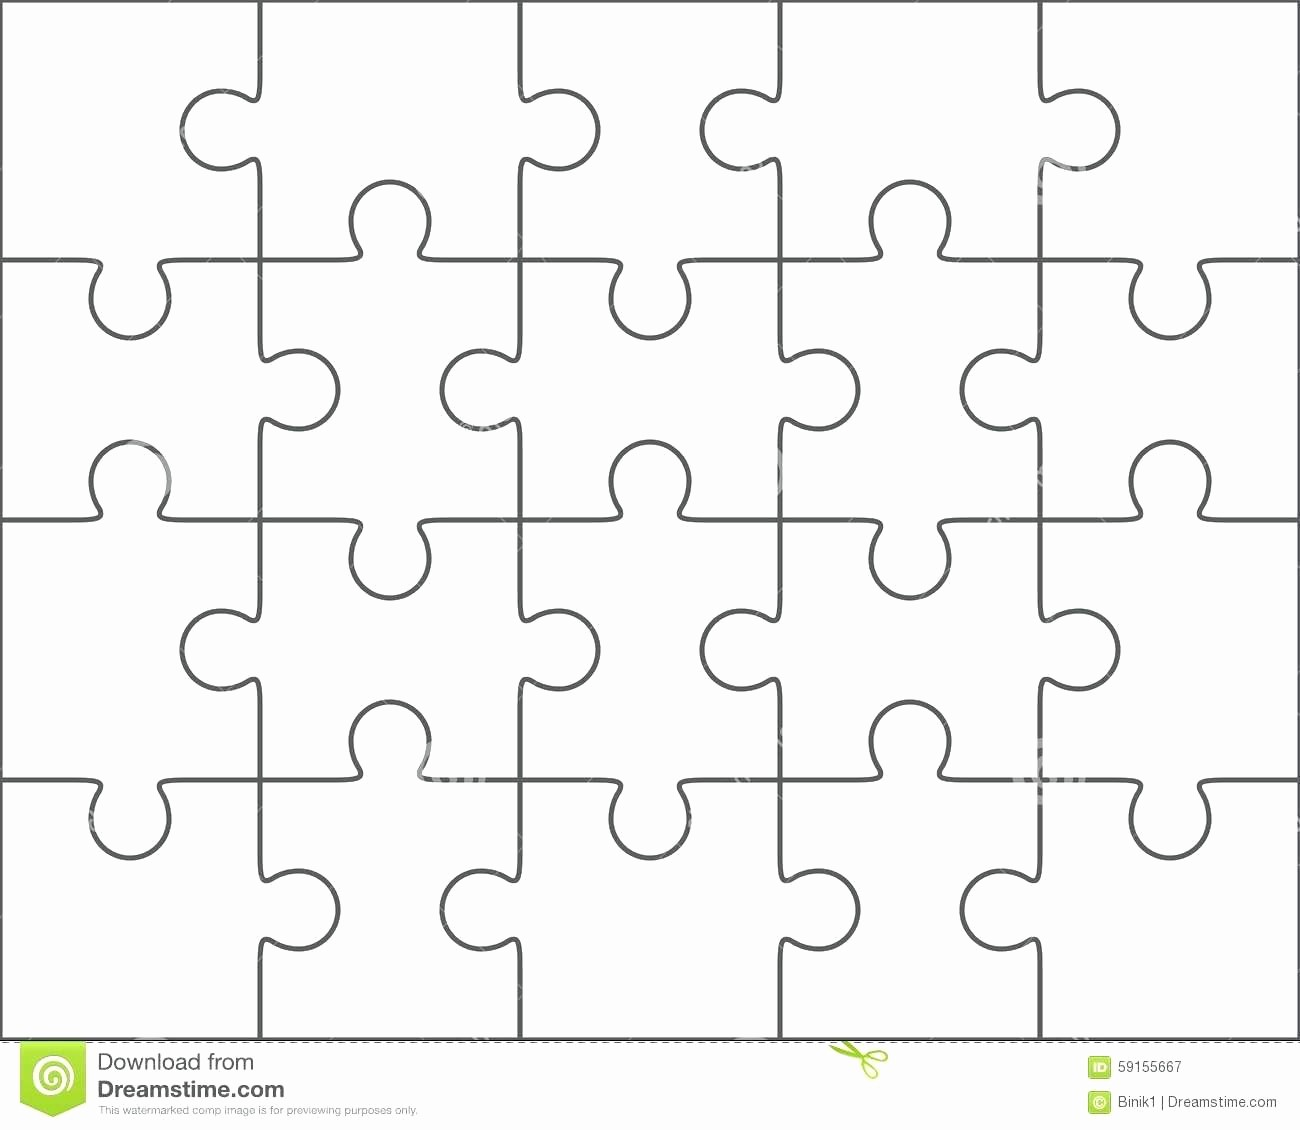 picture regarding Printable Puzzle Pieces Template referred to as Puzzle Parts Template for Term Least difficult Of Template 5 Piece